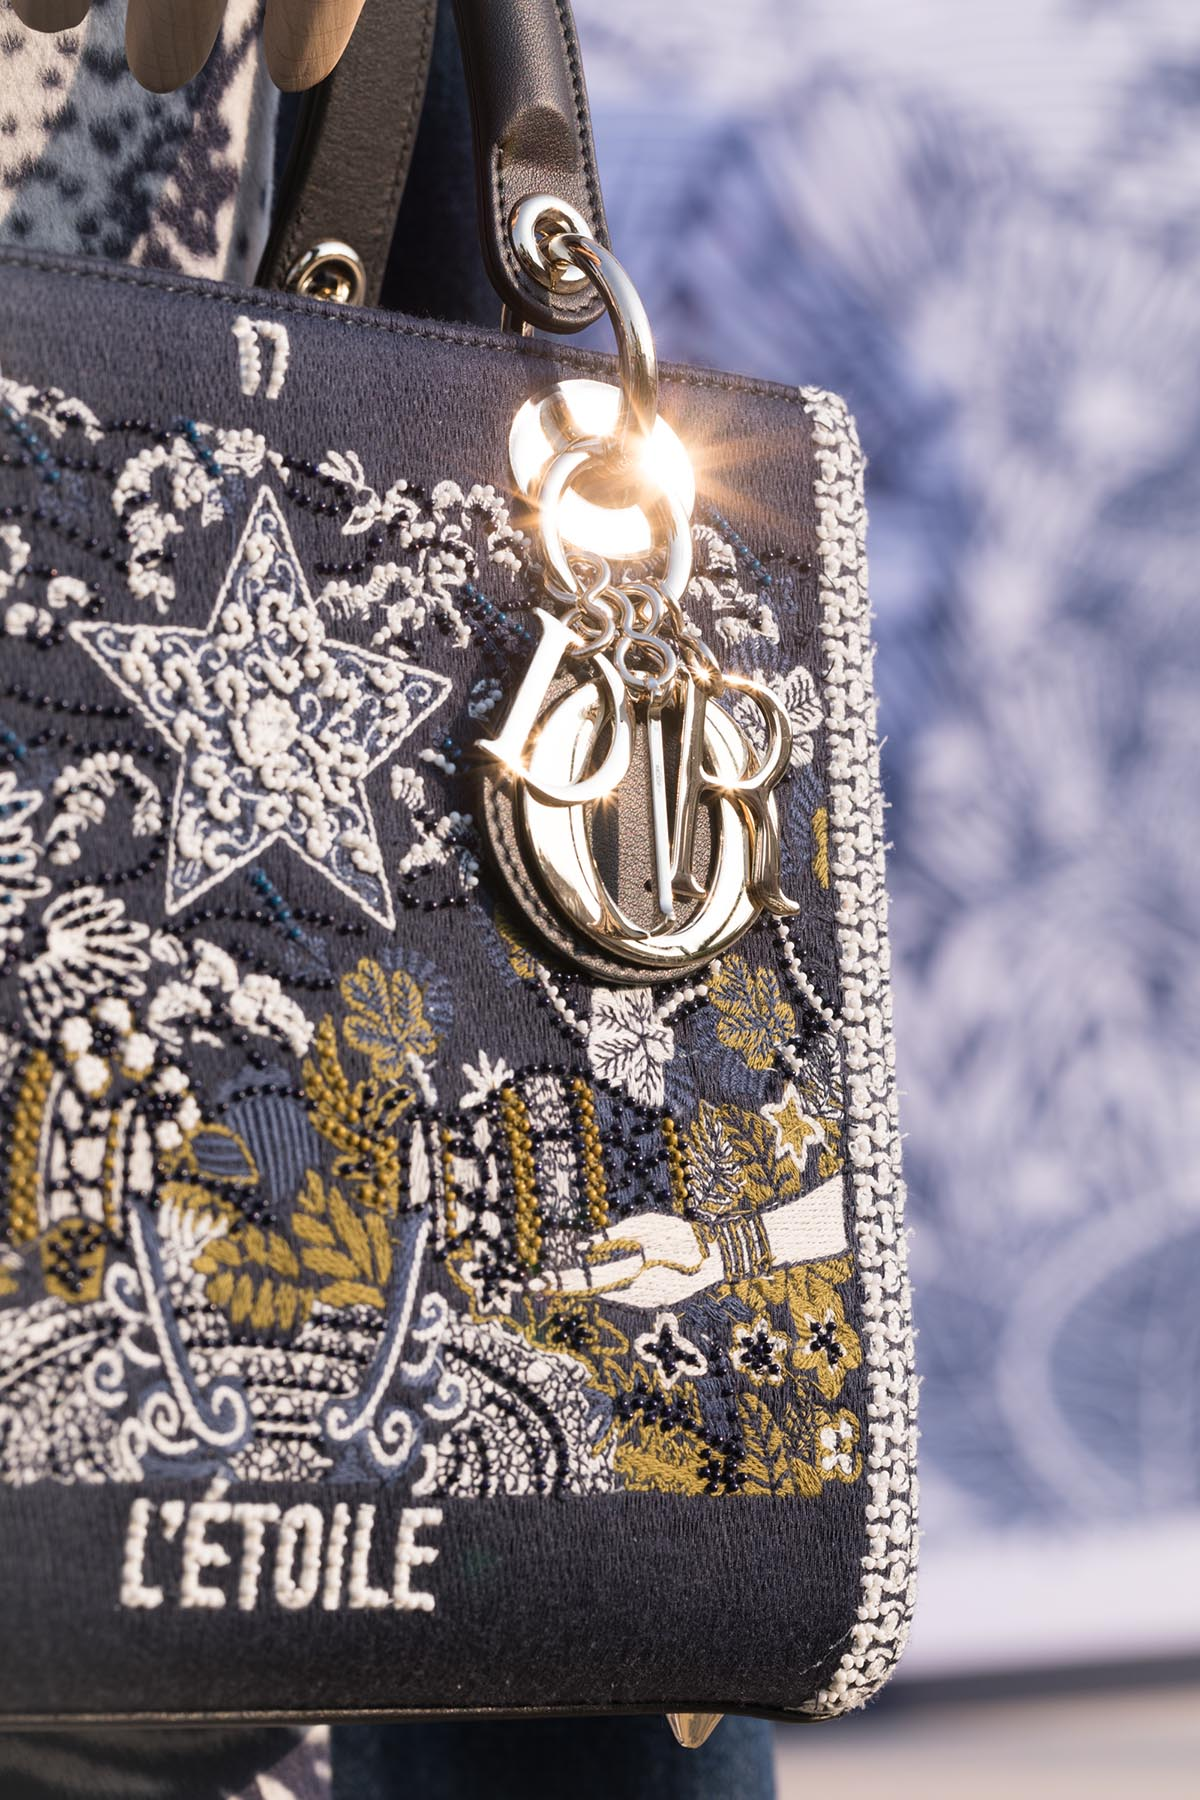 New DIOR Cruise 2020 collection bag L'Etoile by Loesje Kessels Event Photographer Dubai